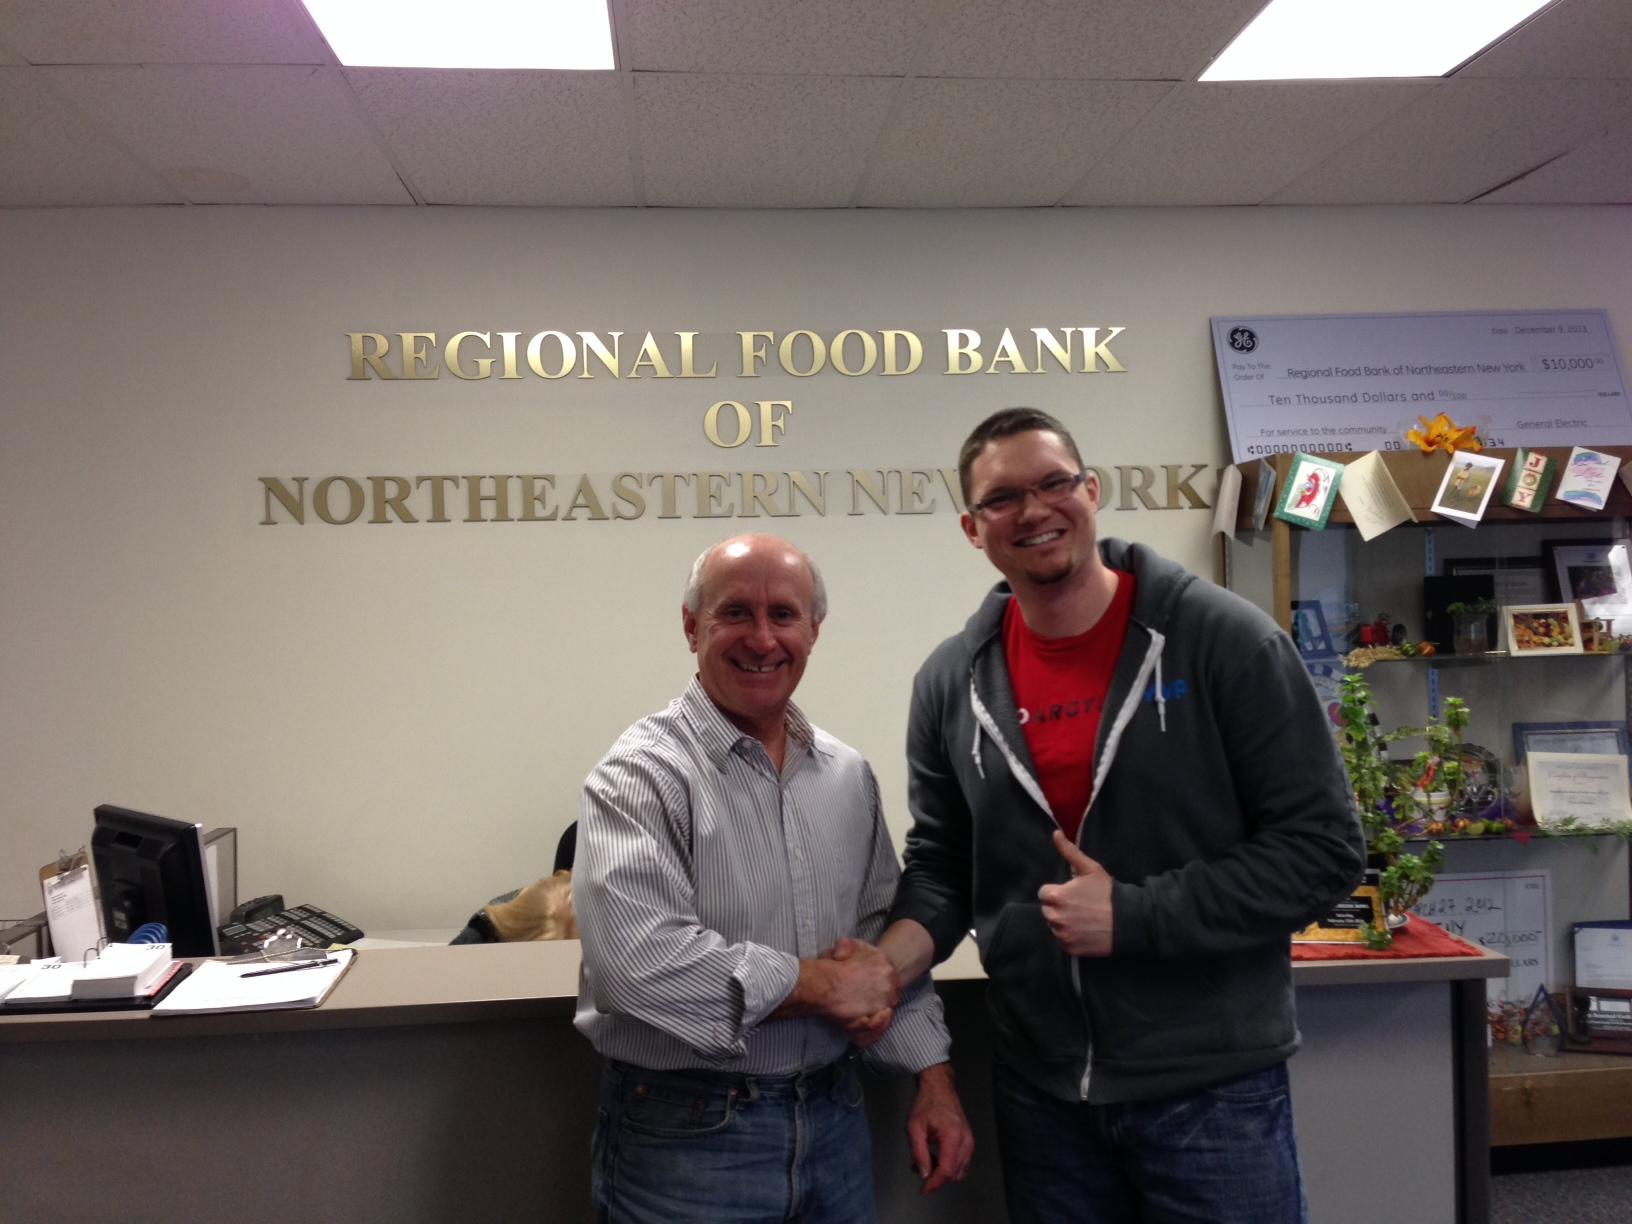 Garry and Mark Quandt shaking hands after the 2013 donation